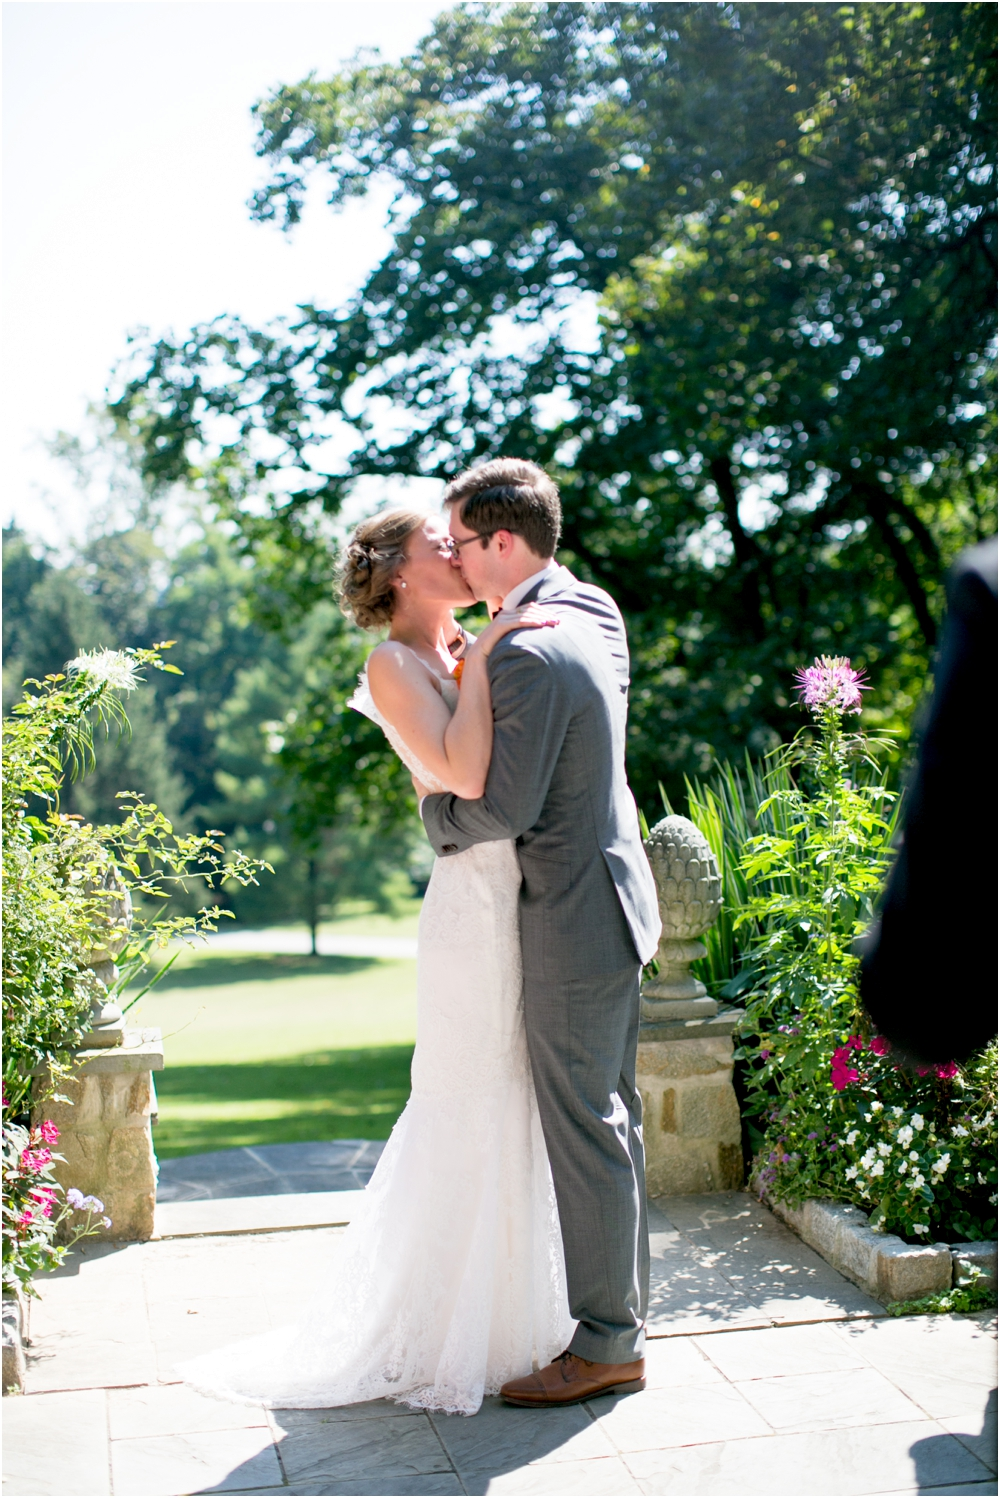 daniel chrissy gramercy mansion outdoor garden wedding living radiant photography_0083.jpg